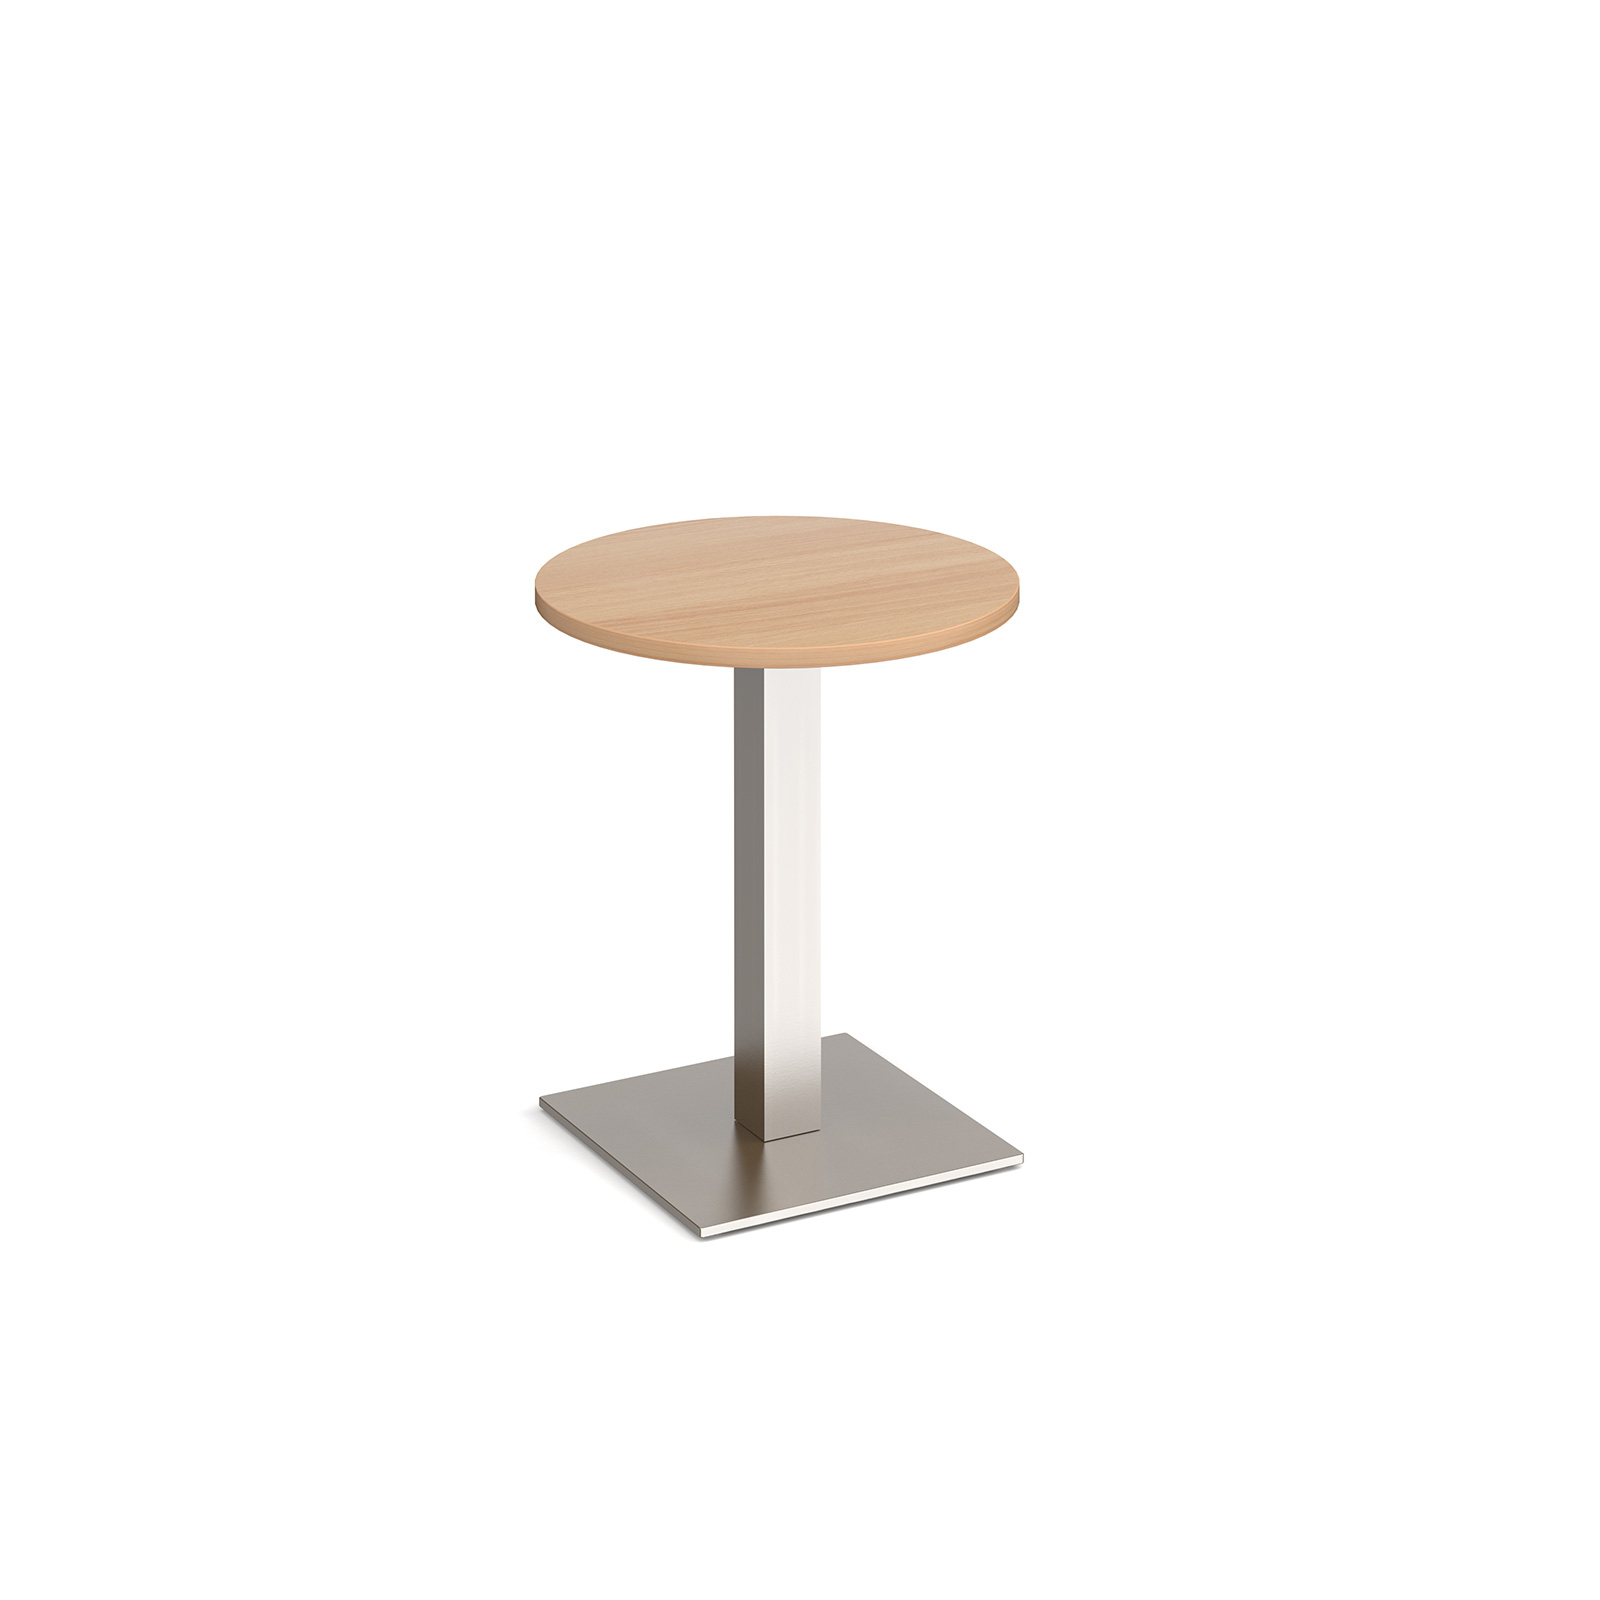 Brescia circular dining table with flat square base